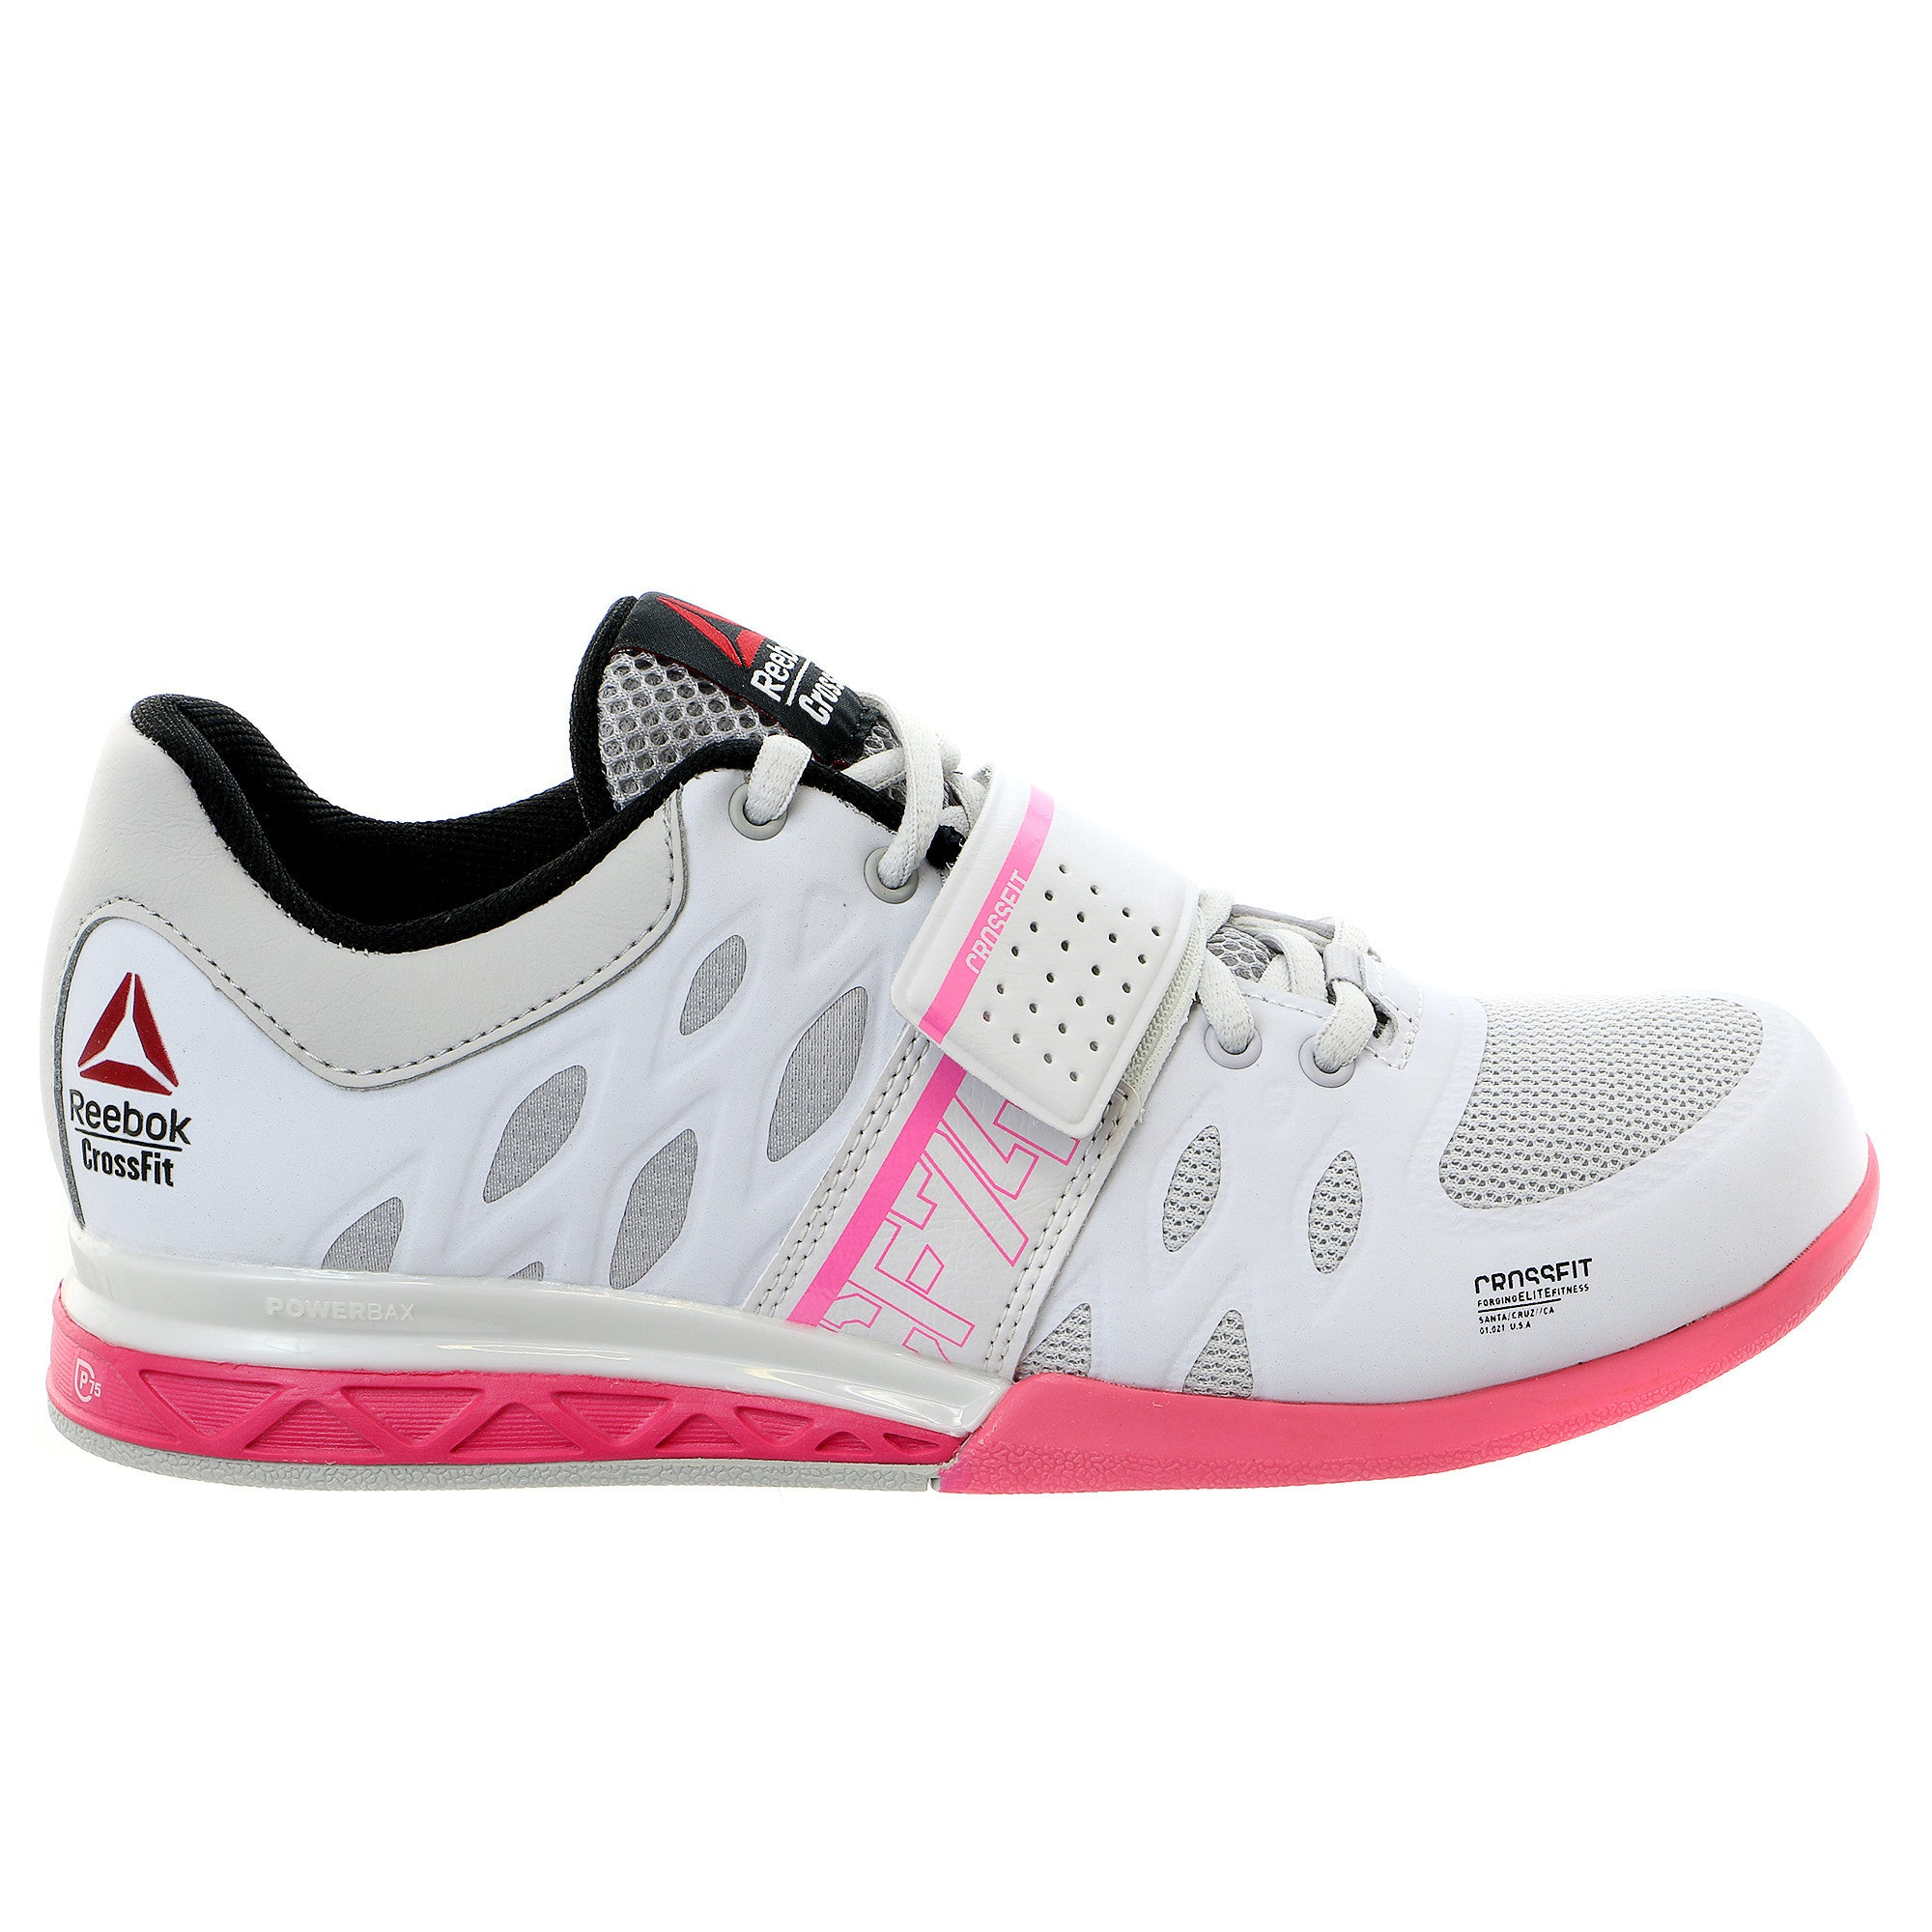 29e2dfedfc1e Reebok Crossfit Lifter 2.0 Training Sneaker Shoe - Womens - Shoplifestyle